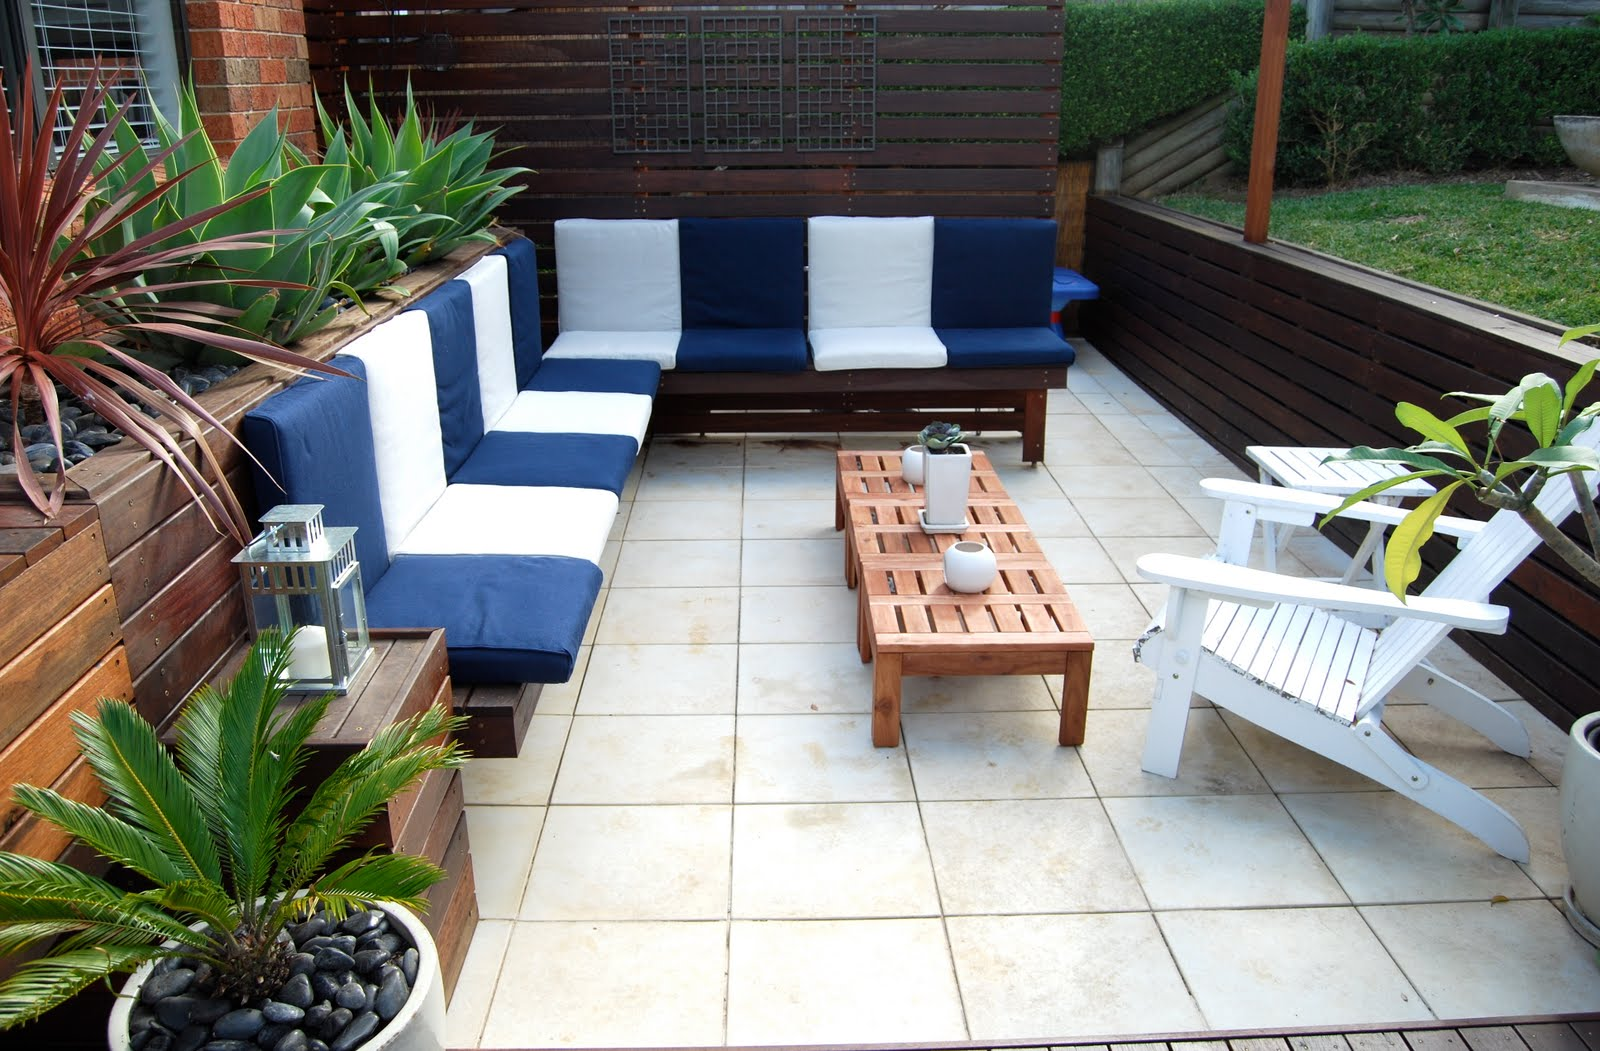 Gorgeous Ikea Lawn Furniture Idea On Dull White Flooring With Blue Sectional Seating And